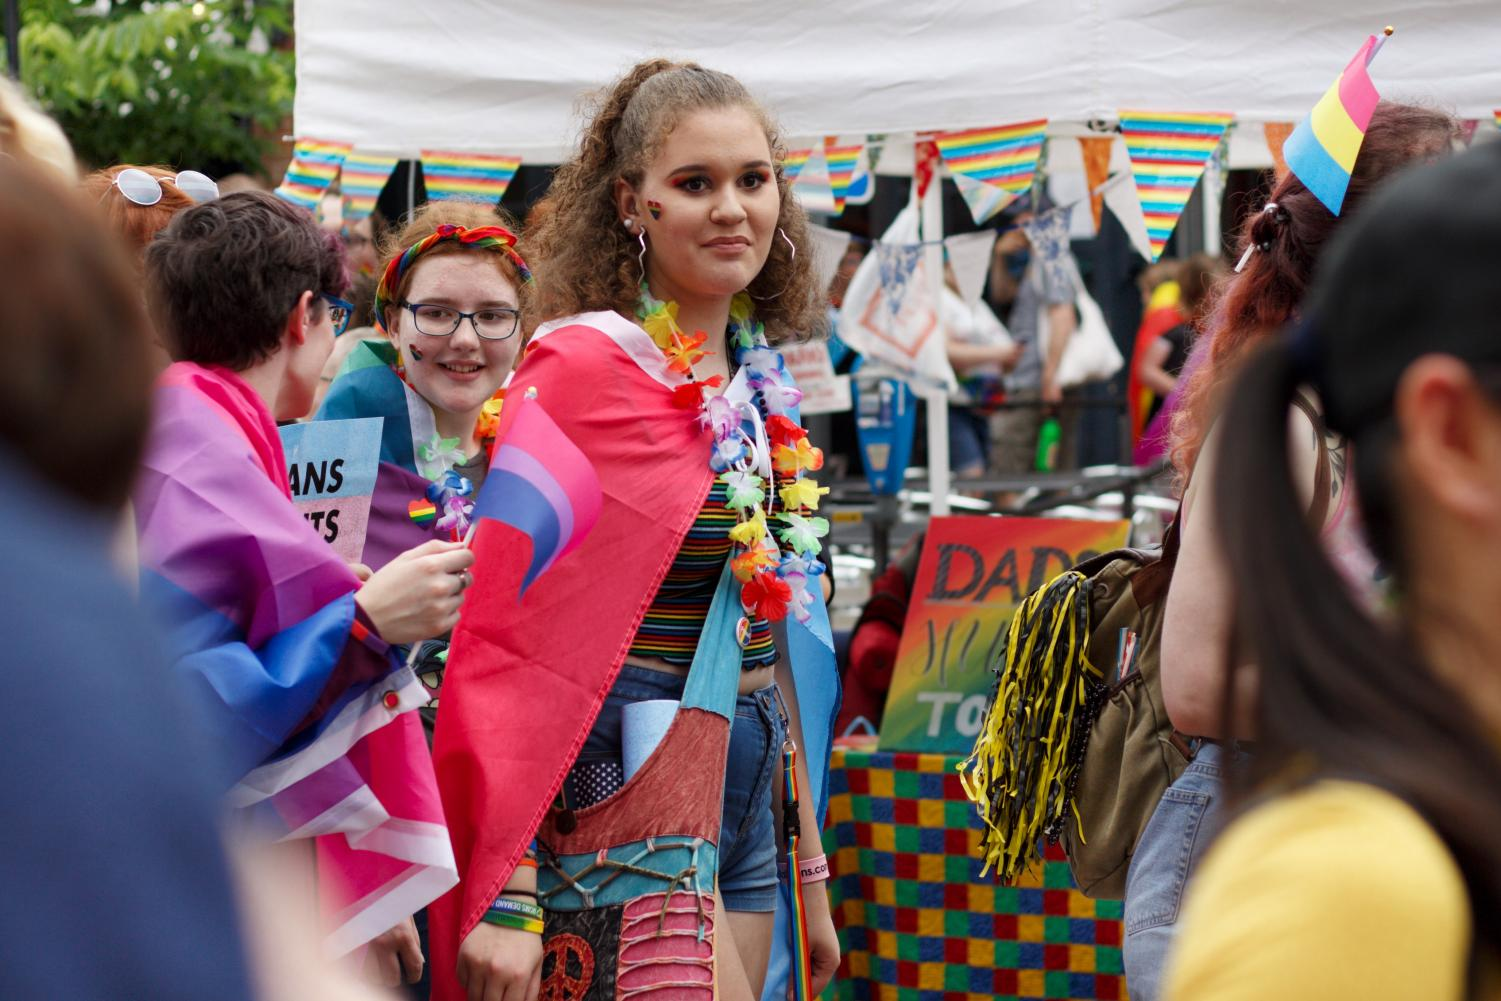 Catty+Jones+%E2%80%9822+and+Heidi+Schmidt-Rundell+%E2%80%9921+walk+in+the+Pride+Parade.+In+colorful+attire%2C+they+joined+hundreds+of+others+to+represent%2C+support%2C+and+celebrate+the+diverse+Iowa+City+community.